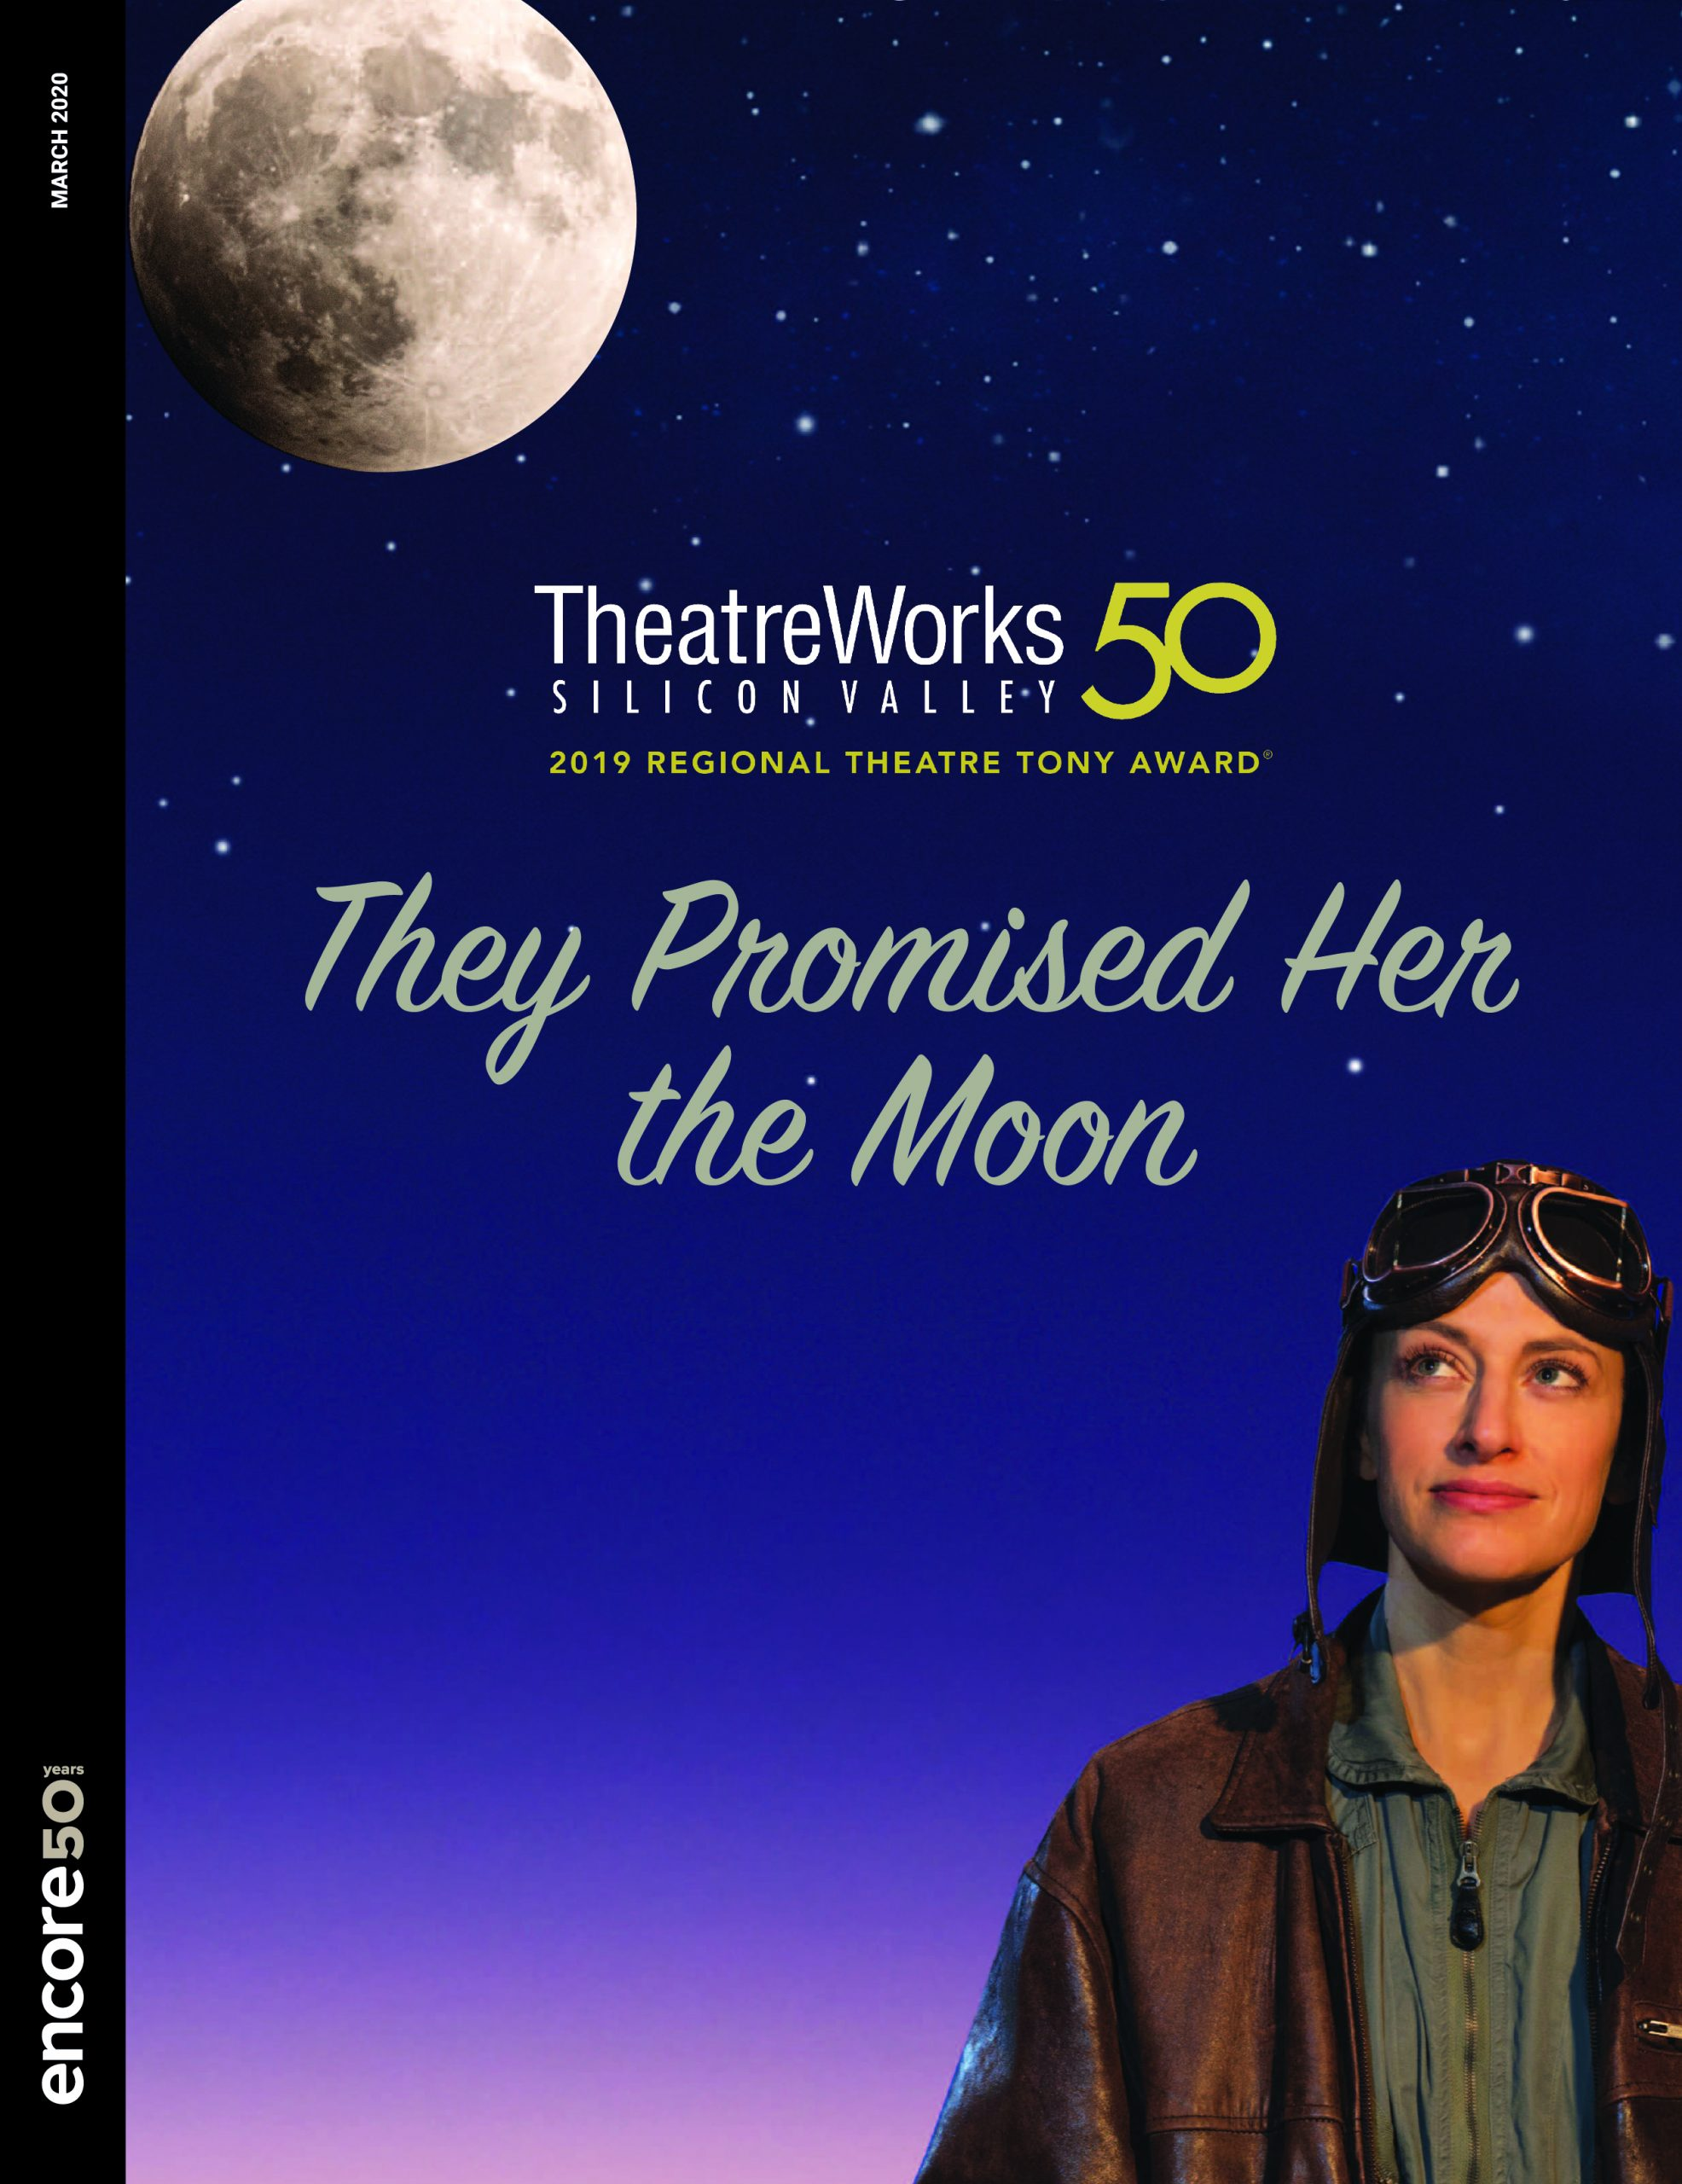 Cover for tThey Promised Her the Moon at Theatreworks, 2020.